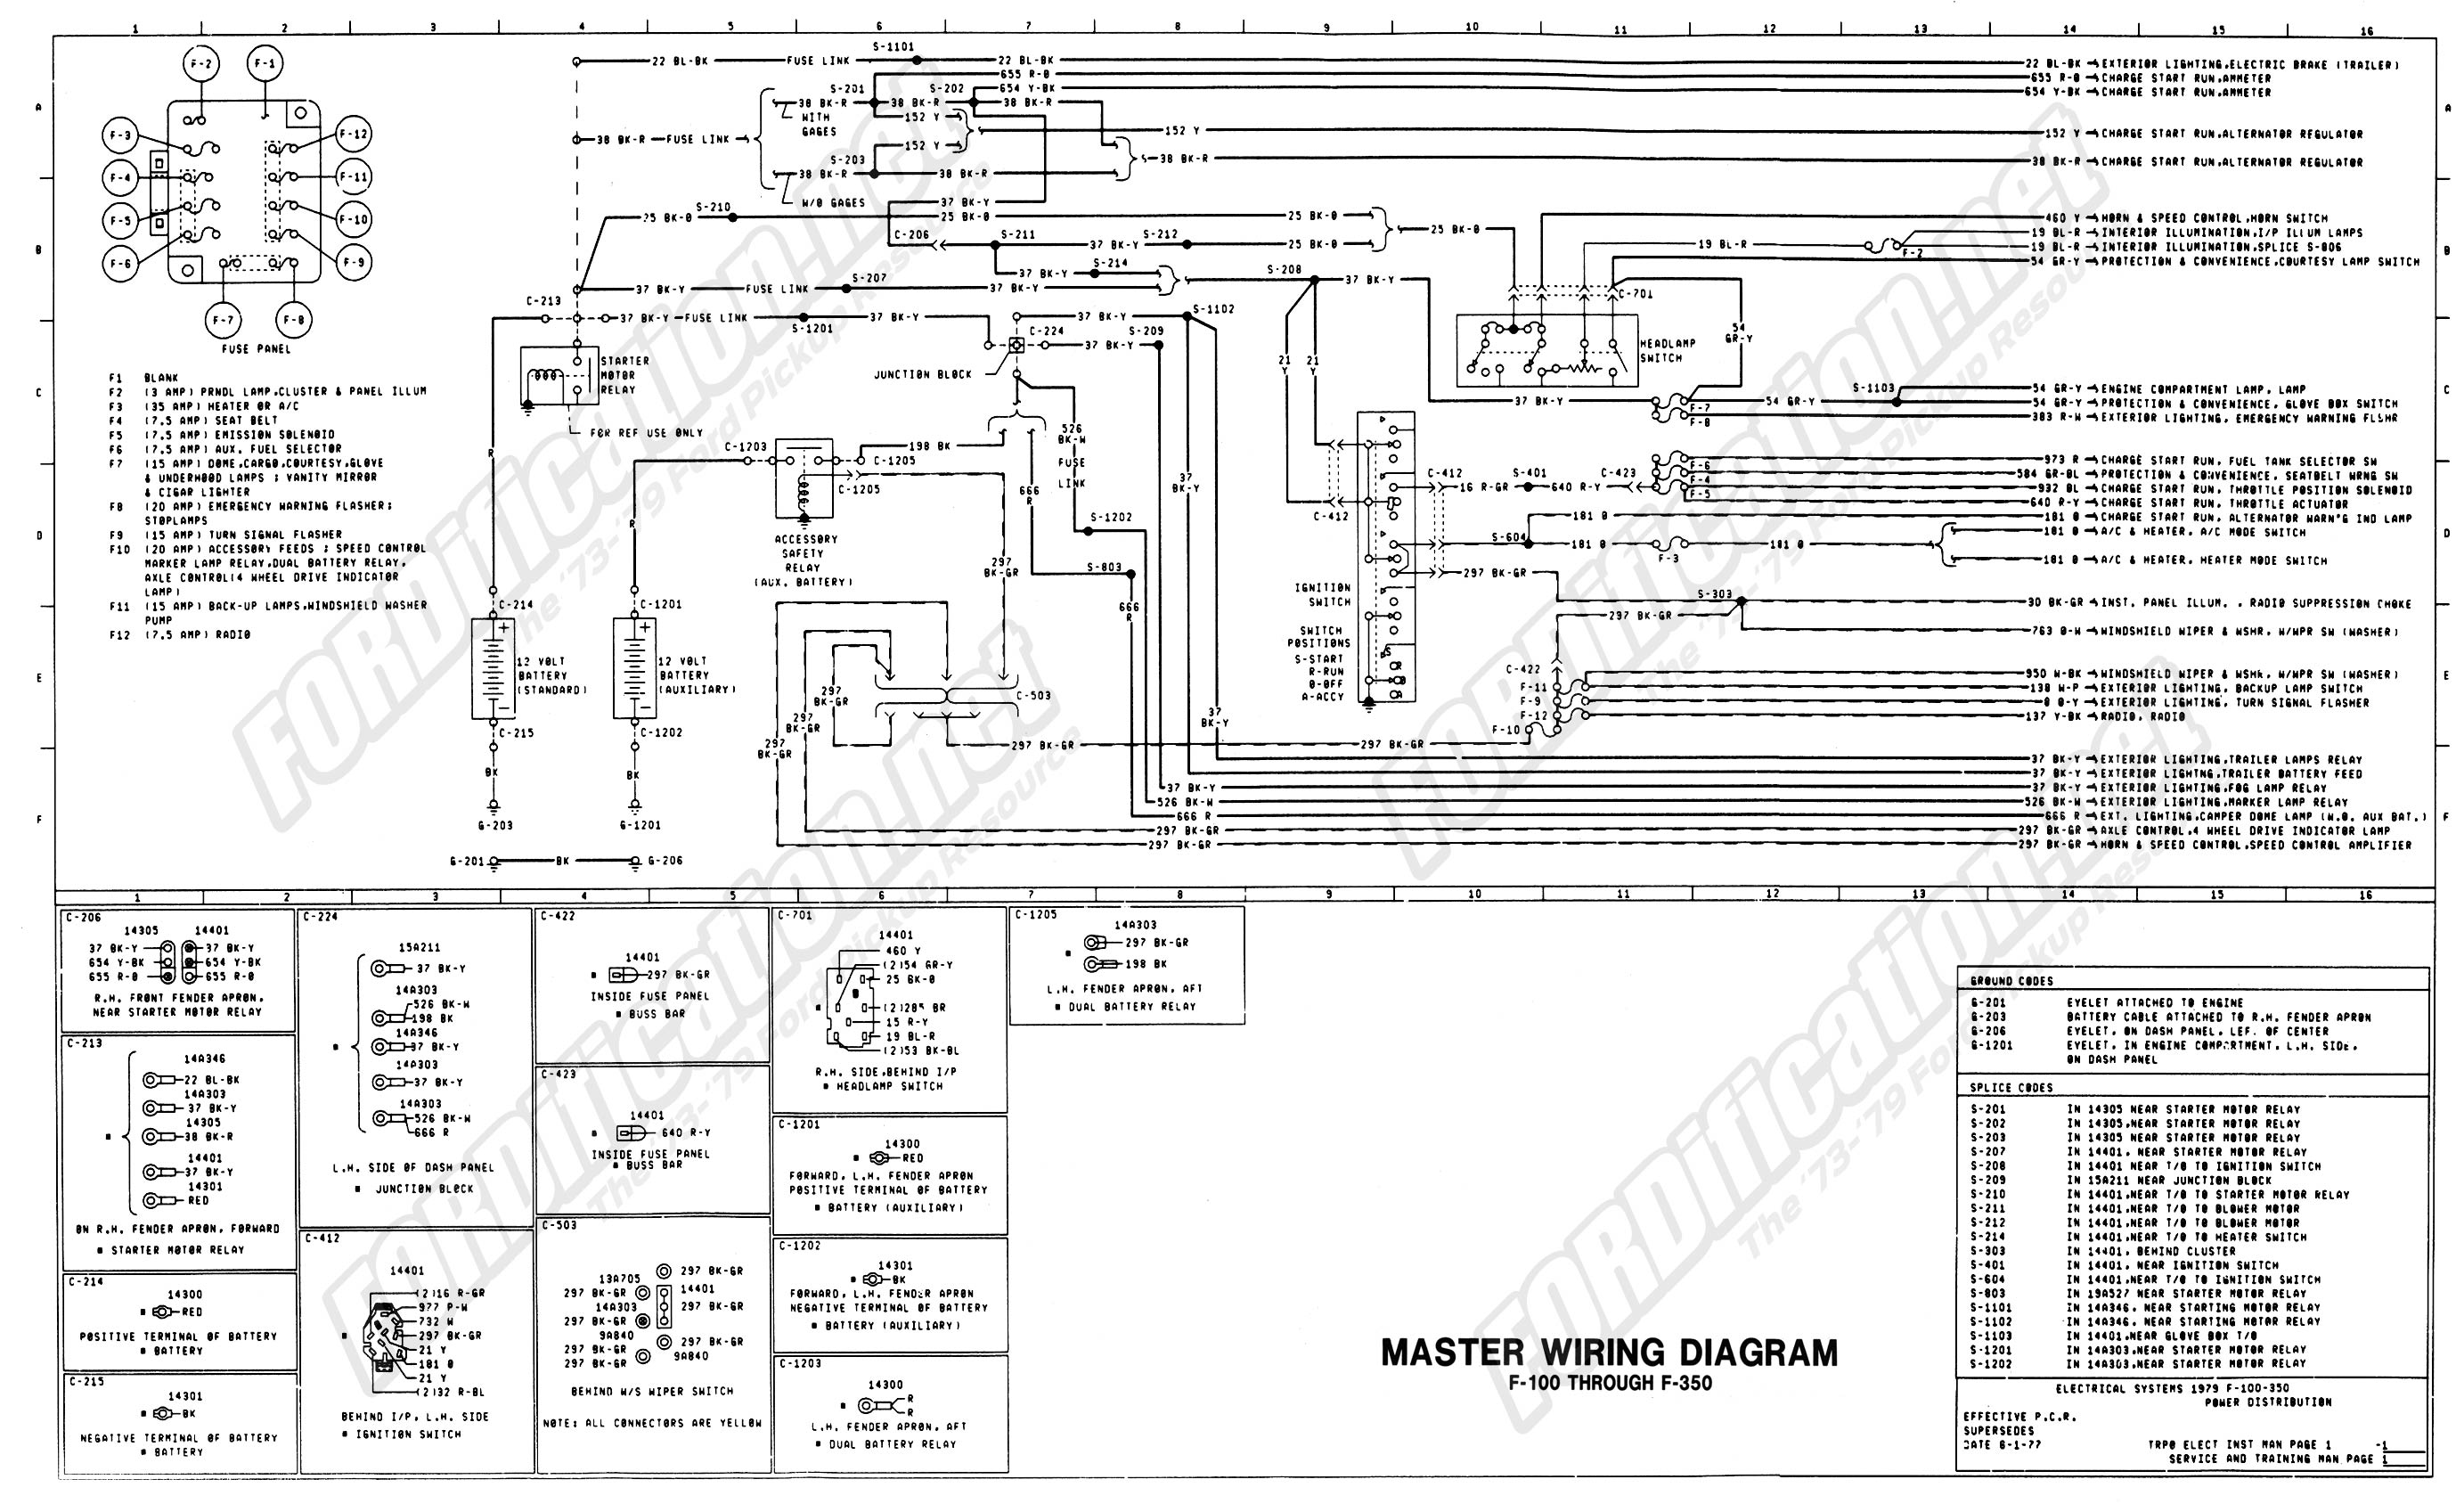 1970 Ford Truck Alternator Wiring | Wiring Diagram  Ford F Alternator Wiring Diagram on ford f150 wiring diagram, 1971 ford f100 power steering, 1946 ford truck wiring diagram, 1971 ford f100 carburetor, 1970 ford wiring diagram, 1971 ford f100 tires, 1992 chevy silverado 1500 wiring diagram, 1971 ford f100 parts, ford 800 wiring diagram, basic ford solenoid wiring diagram, 1971 ford f100 specifications, 1971 ford f100 4x4, 1971 chevrolet camaro wiring diagram, 1971 chevy nova wiring diagram, 1955 ford wiring diagram, 1971 oldsmobile cutlass wiring diagram, ford f-250 wiring diagram, 1971 chevrolet el camino wiring diagram, 1971 ford f100 engine, 1966 ford wiring diagram,